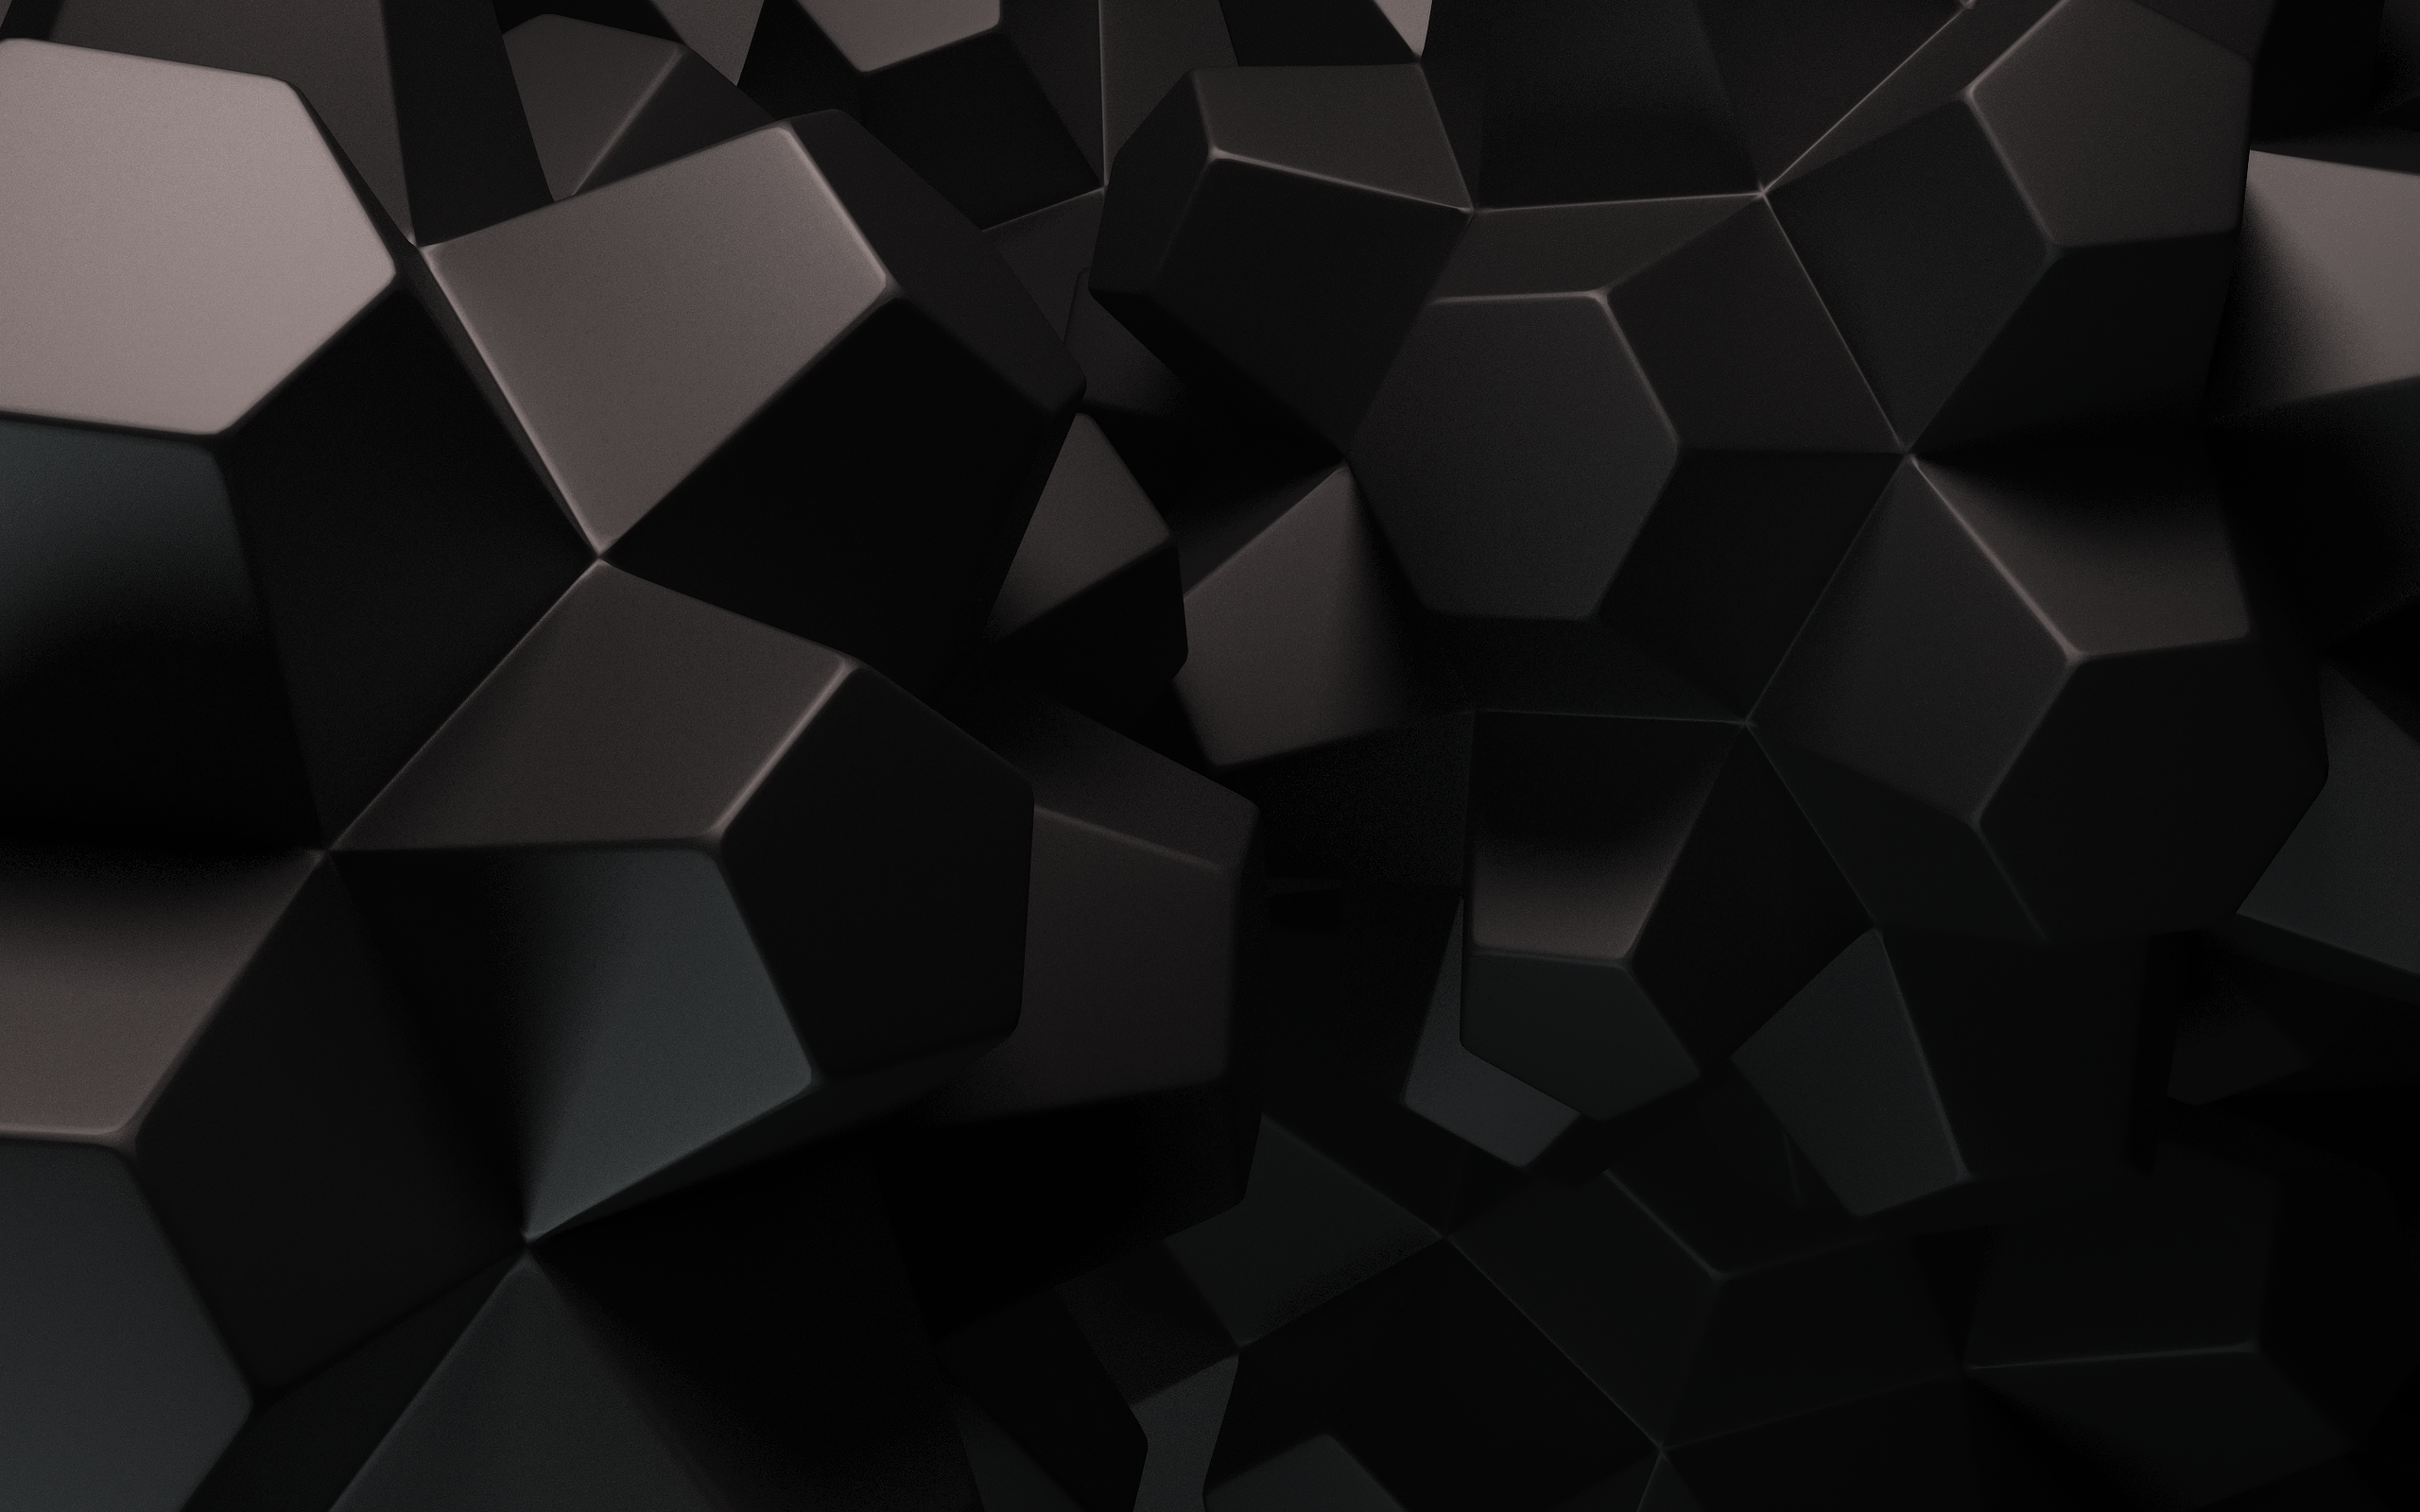 Geometric shapes Wallpaper 2414 2560x1600